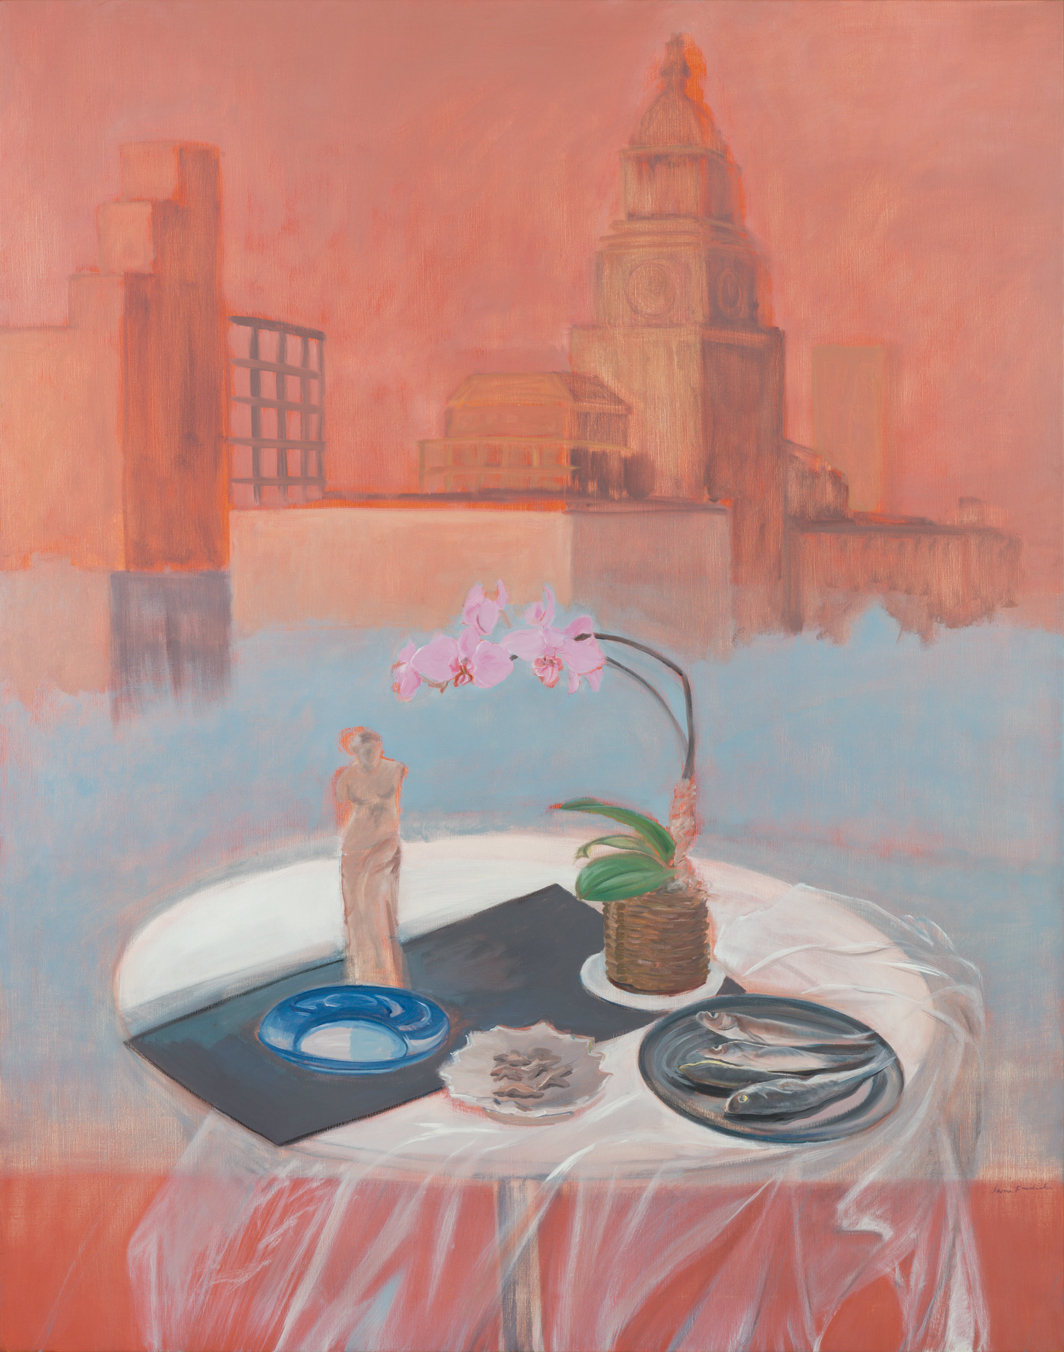 "Jane Freilicher, Parts of a World, 1987, oil on linen, 68 1⁄2 × 53""."